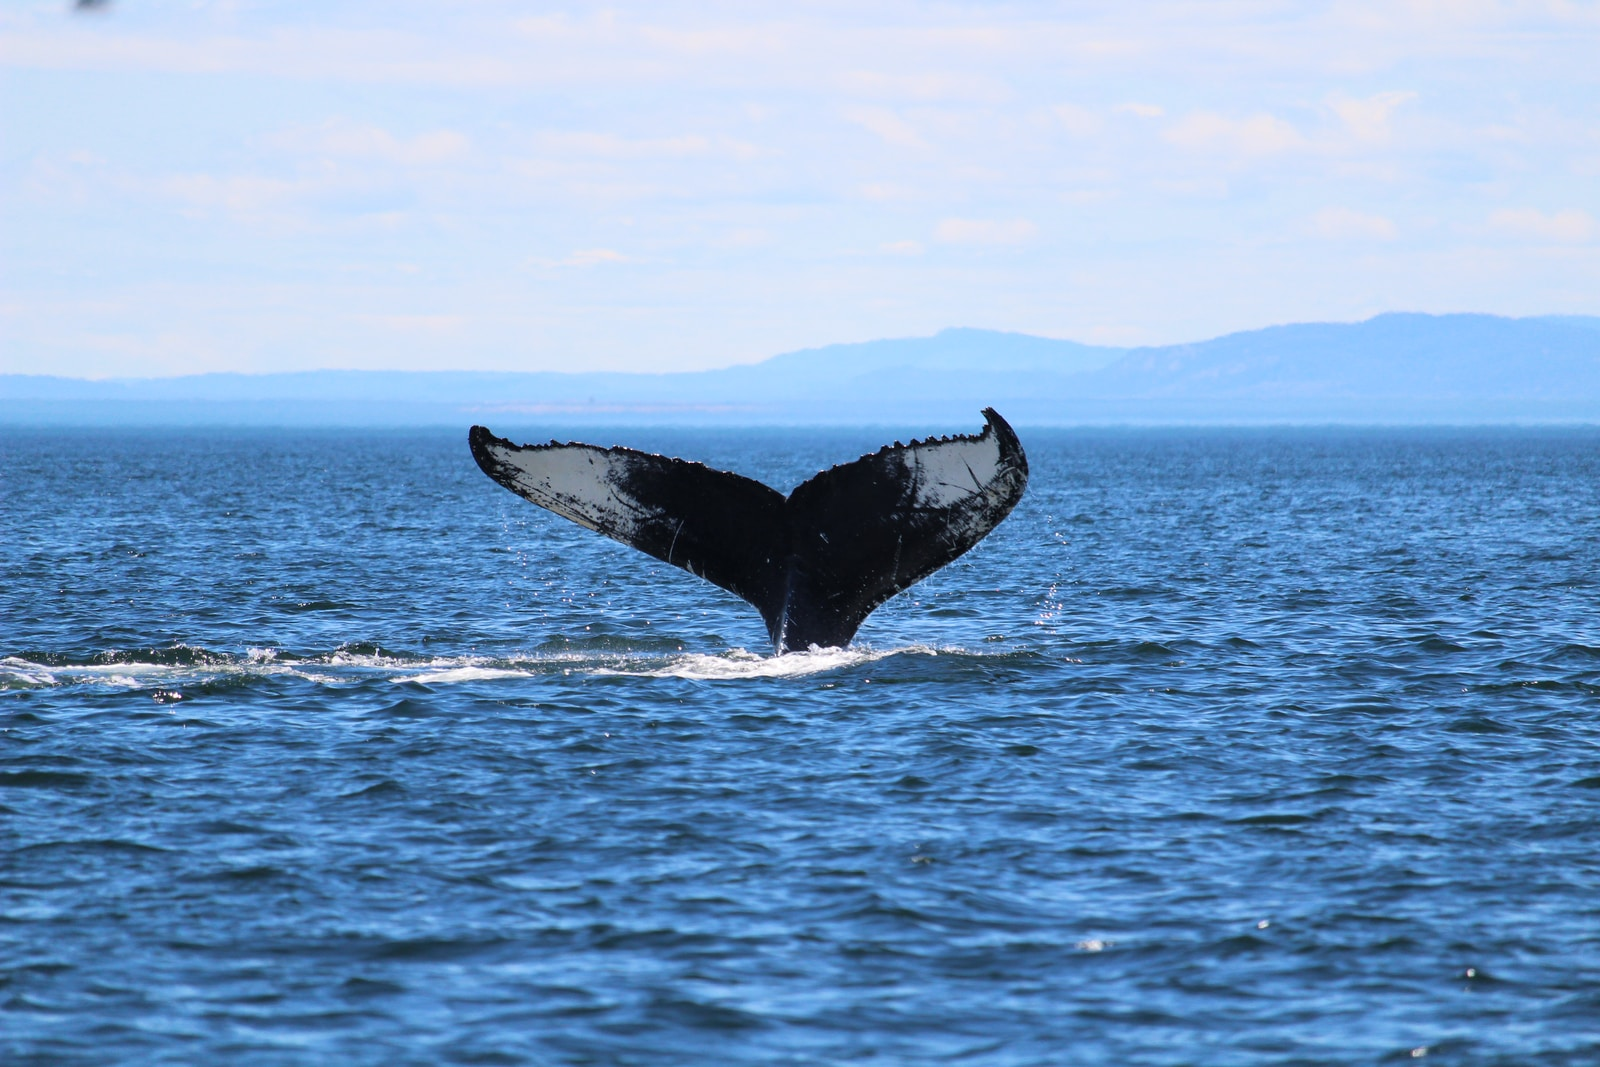 whale jumping over the sea during daytime